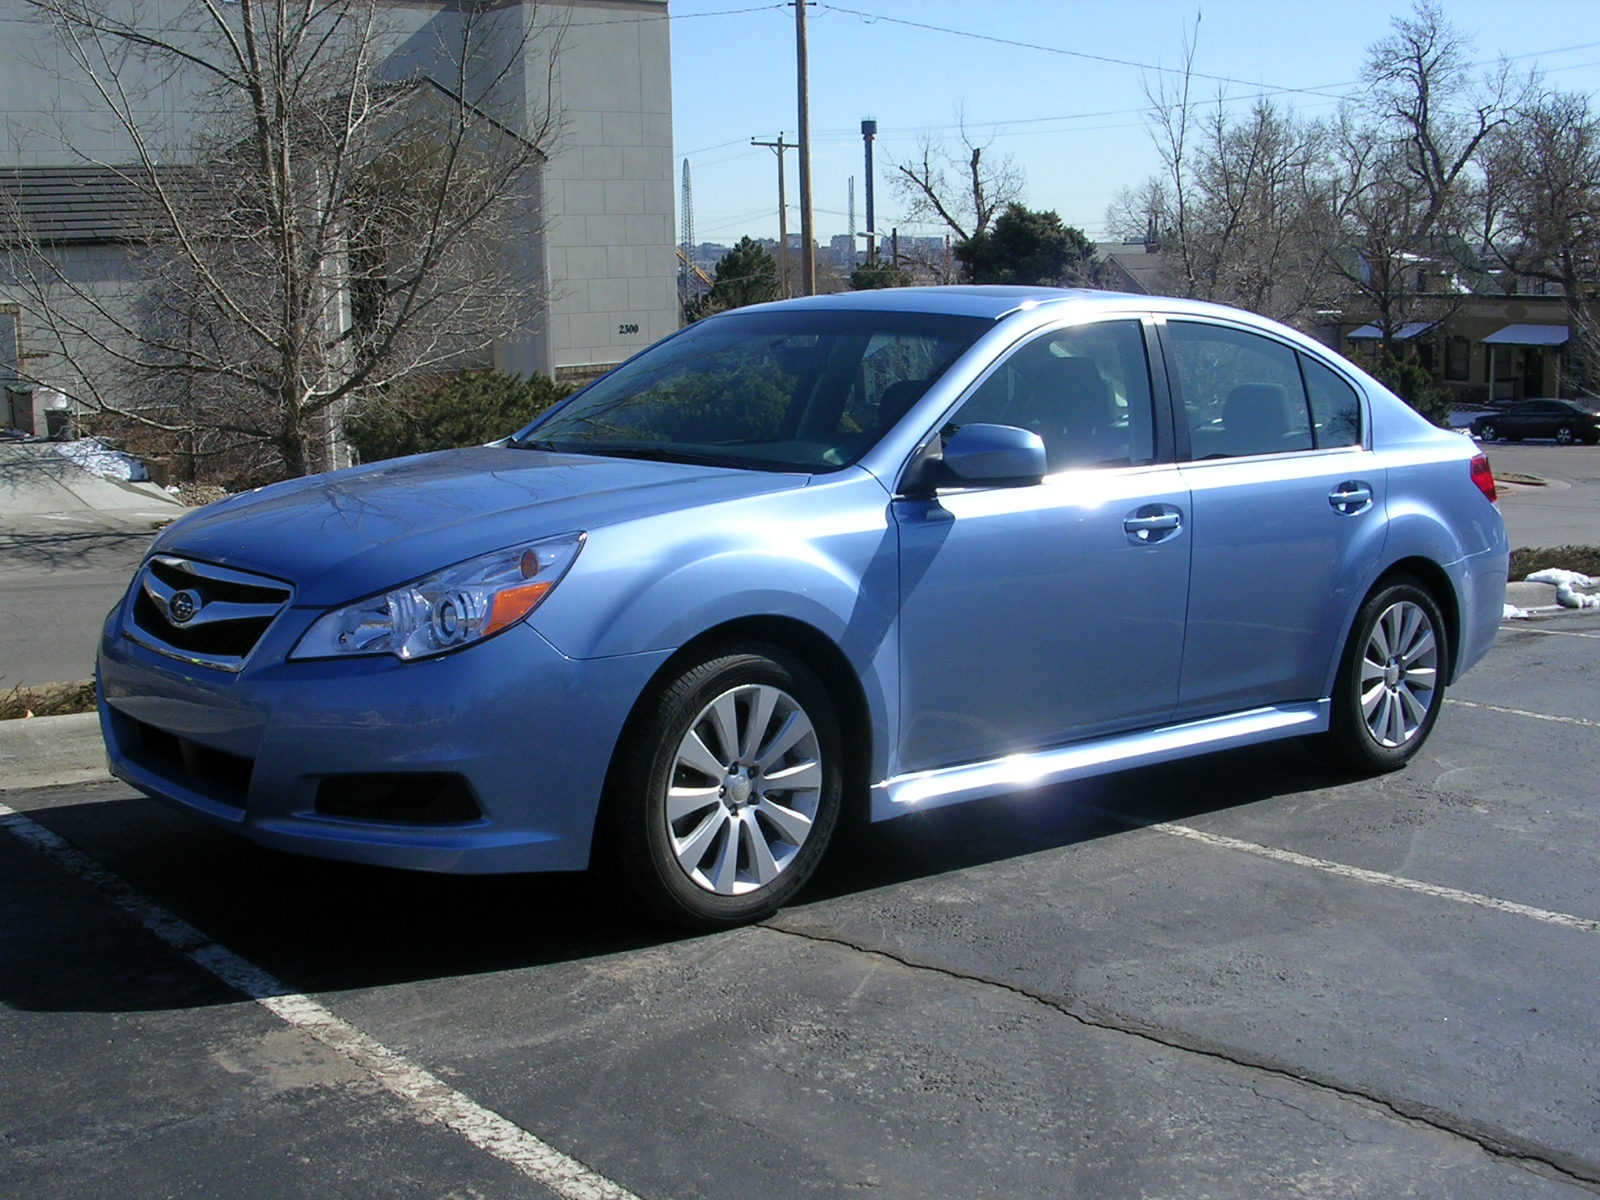 2010 subaru legacy 3 6r all new bigger roomier and more power denver auto solutions. Black Bedroom Furniture Sets. Home Design Ideas